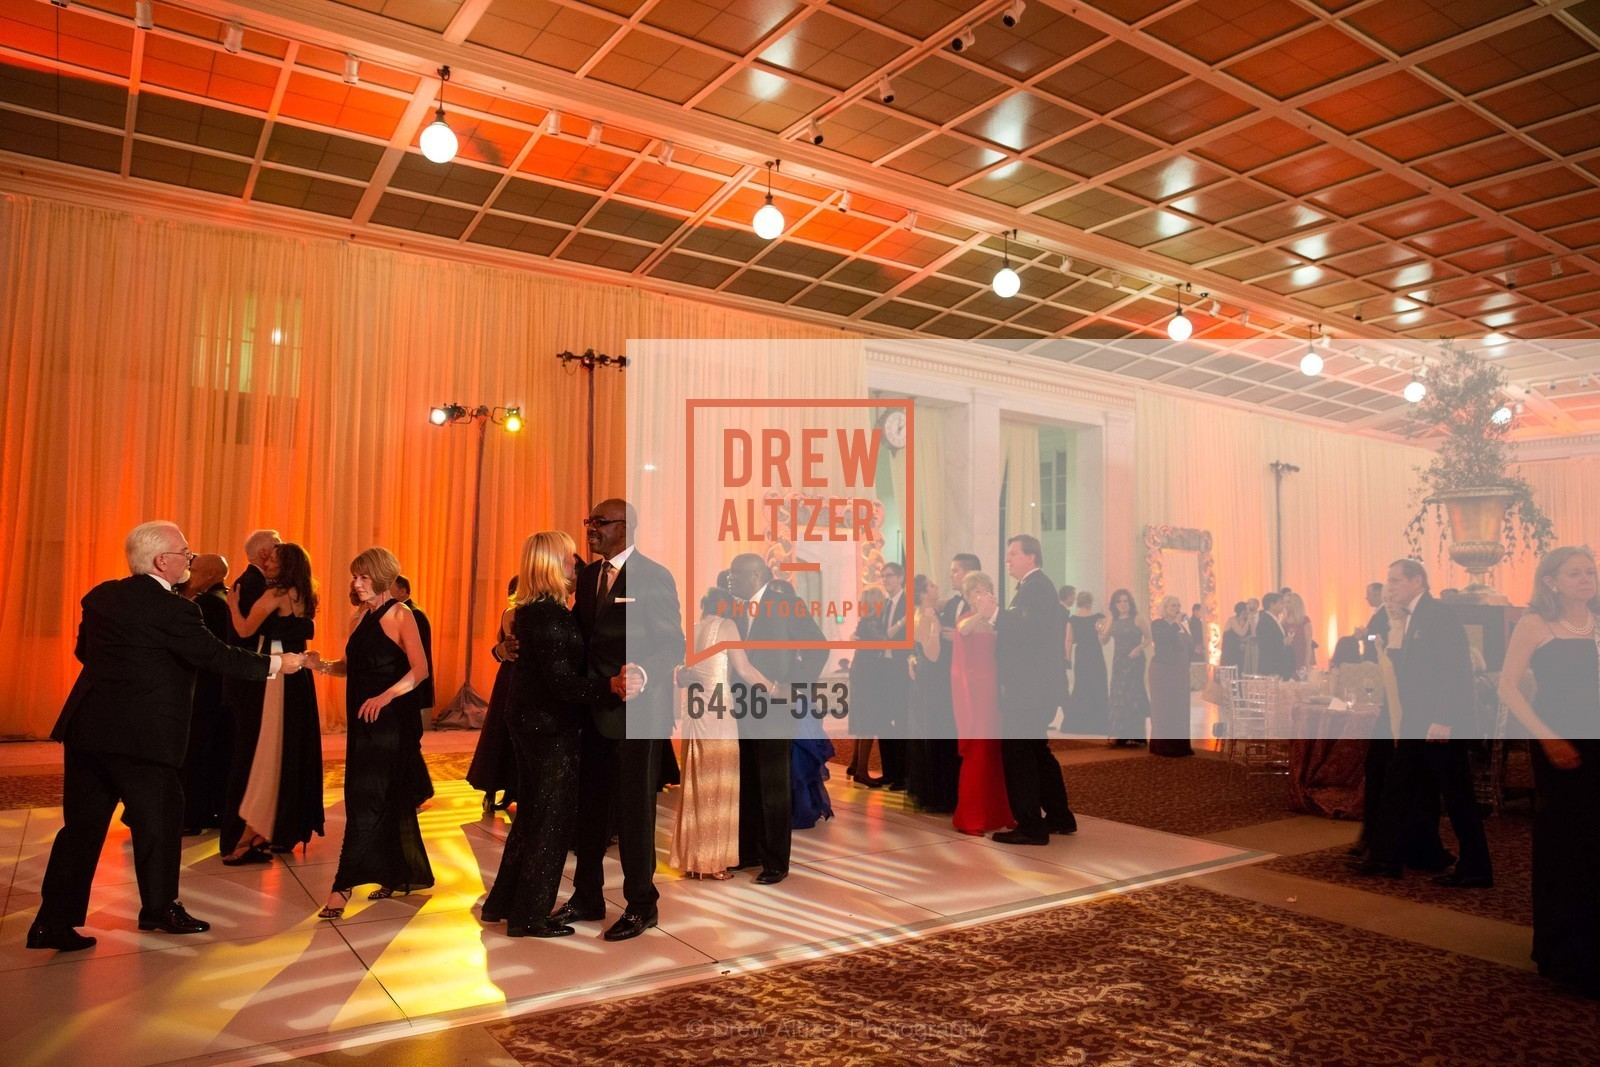 Atmosphere, SAN FRANCISCO OPERA'S 92nd Opera Ball 2014: PASSIONE, Opera House, September 5th, 2014,Drew Altizer, Drew Altizer Photography, full-service agency, private events, San Francisco photographer, photographer california